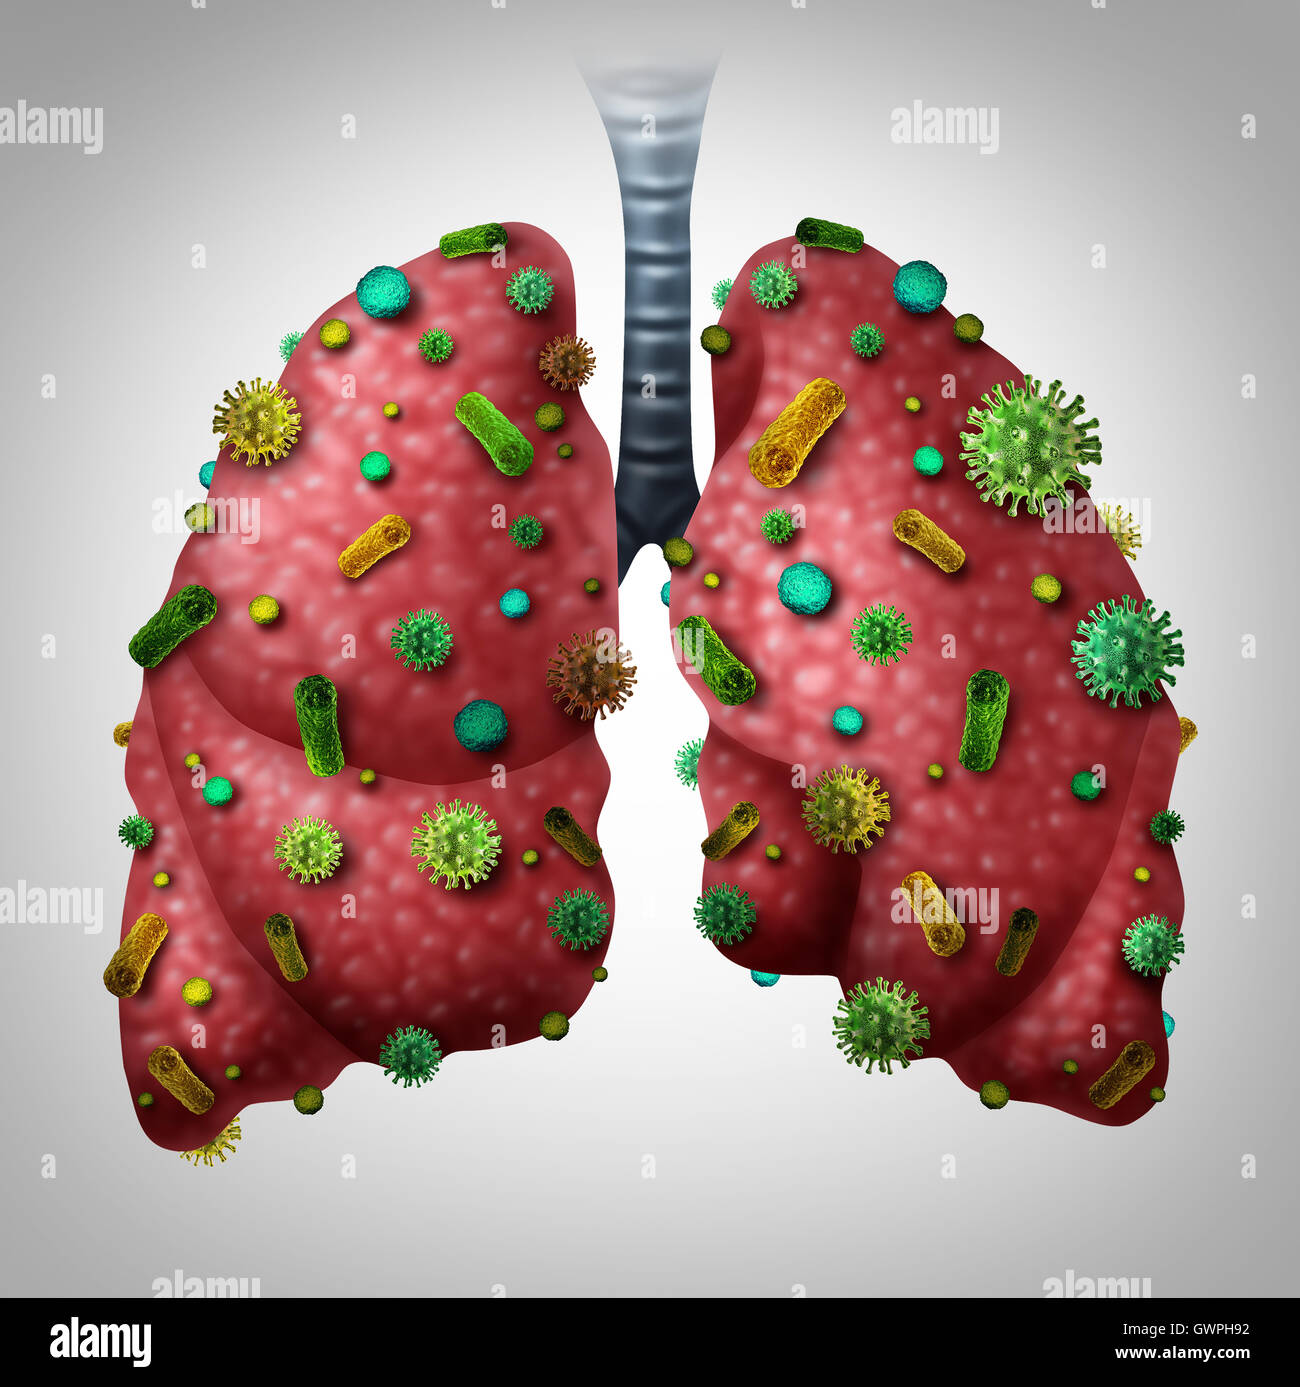 Pneumonia infection medical concept as human lungs infected by virus and bacteria as a lung disease diagnosis with - Stock Image